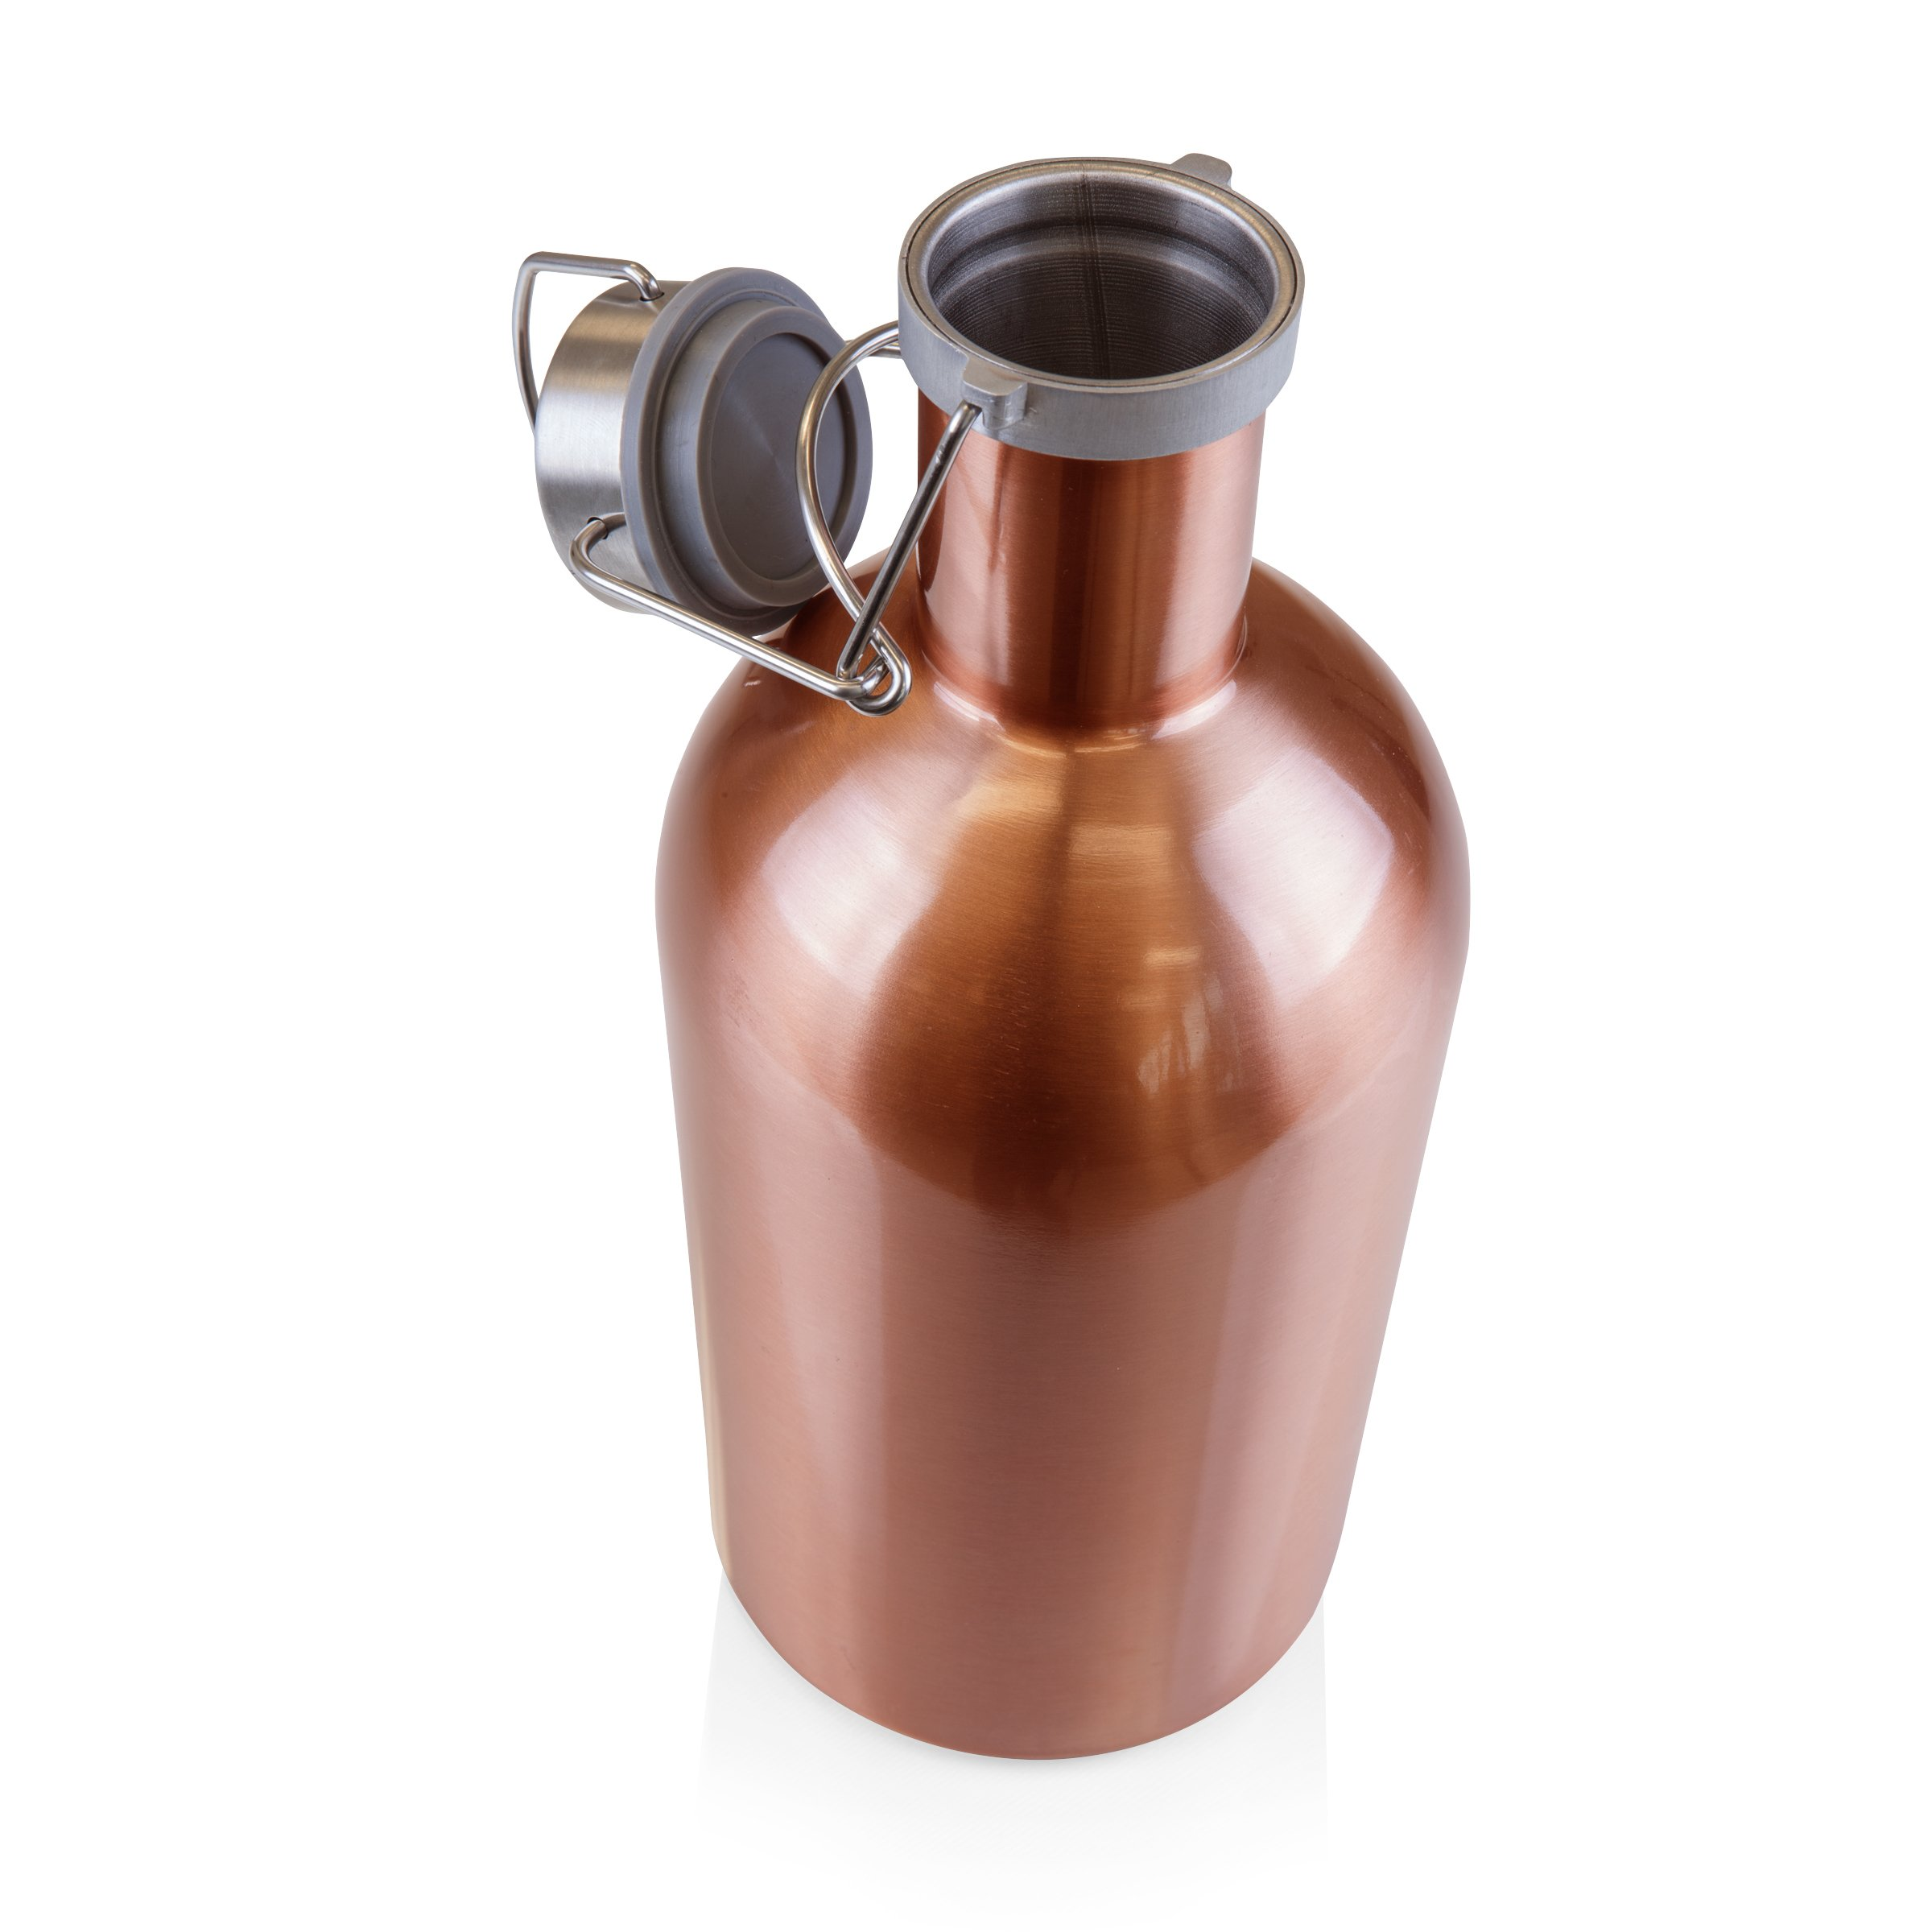 Stainless Steel 64-Ounce Beer Growler by LEGACY - a Picnic Time Brand by LEGACY - a Picnic Time Brand (Image #2)